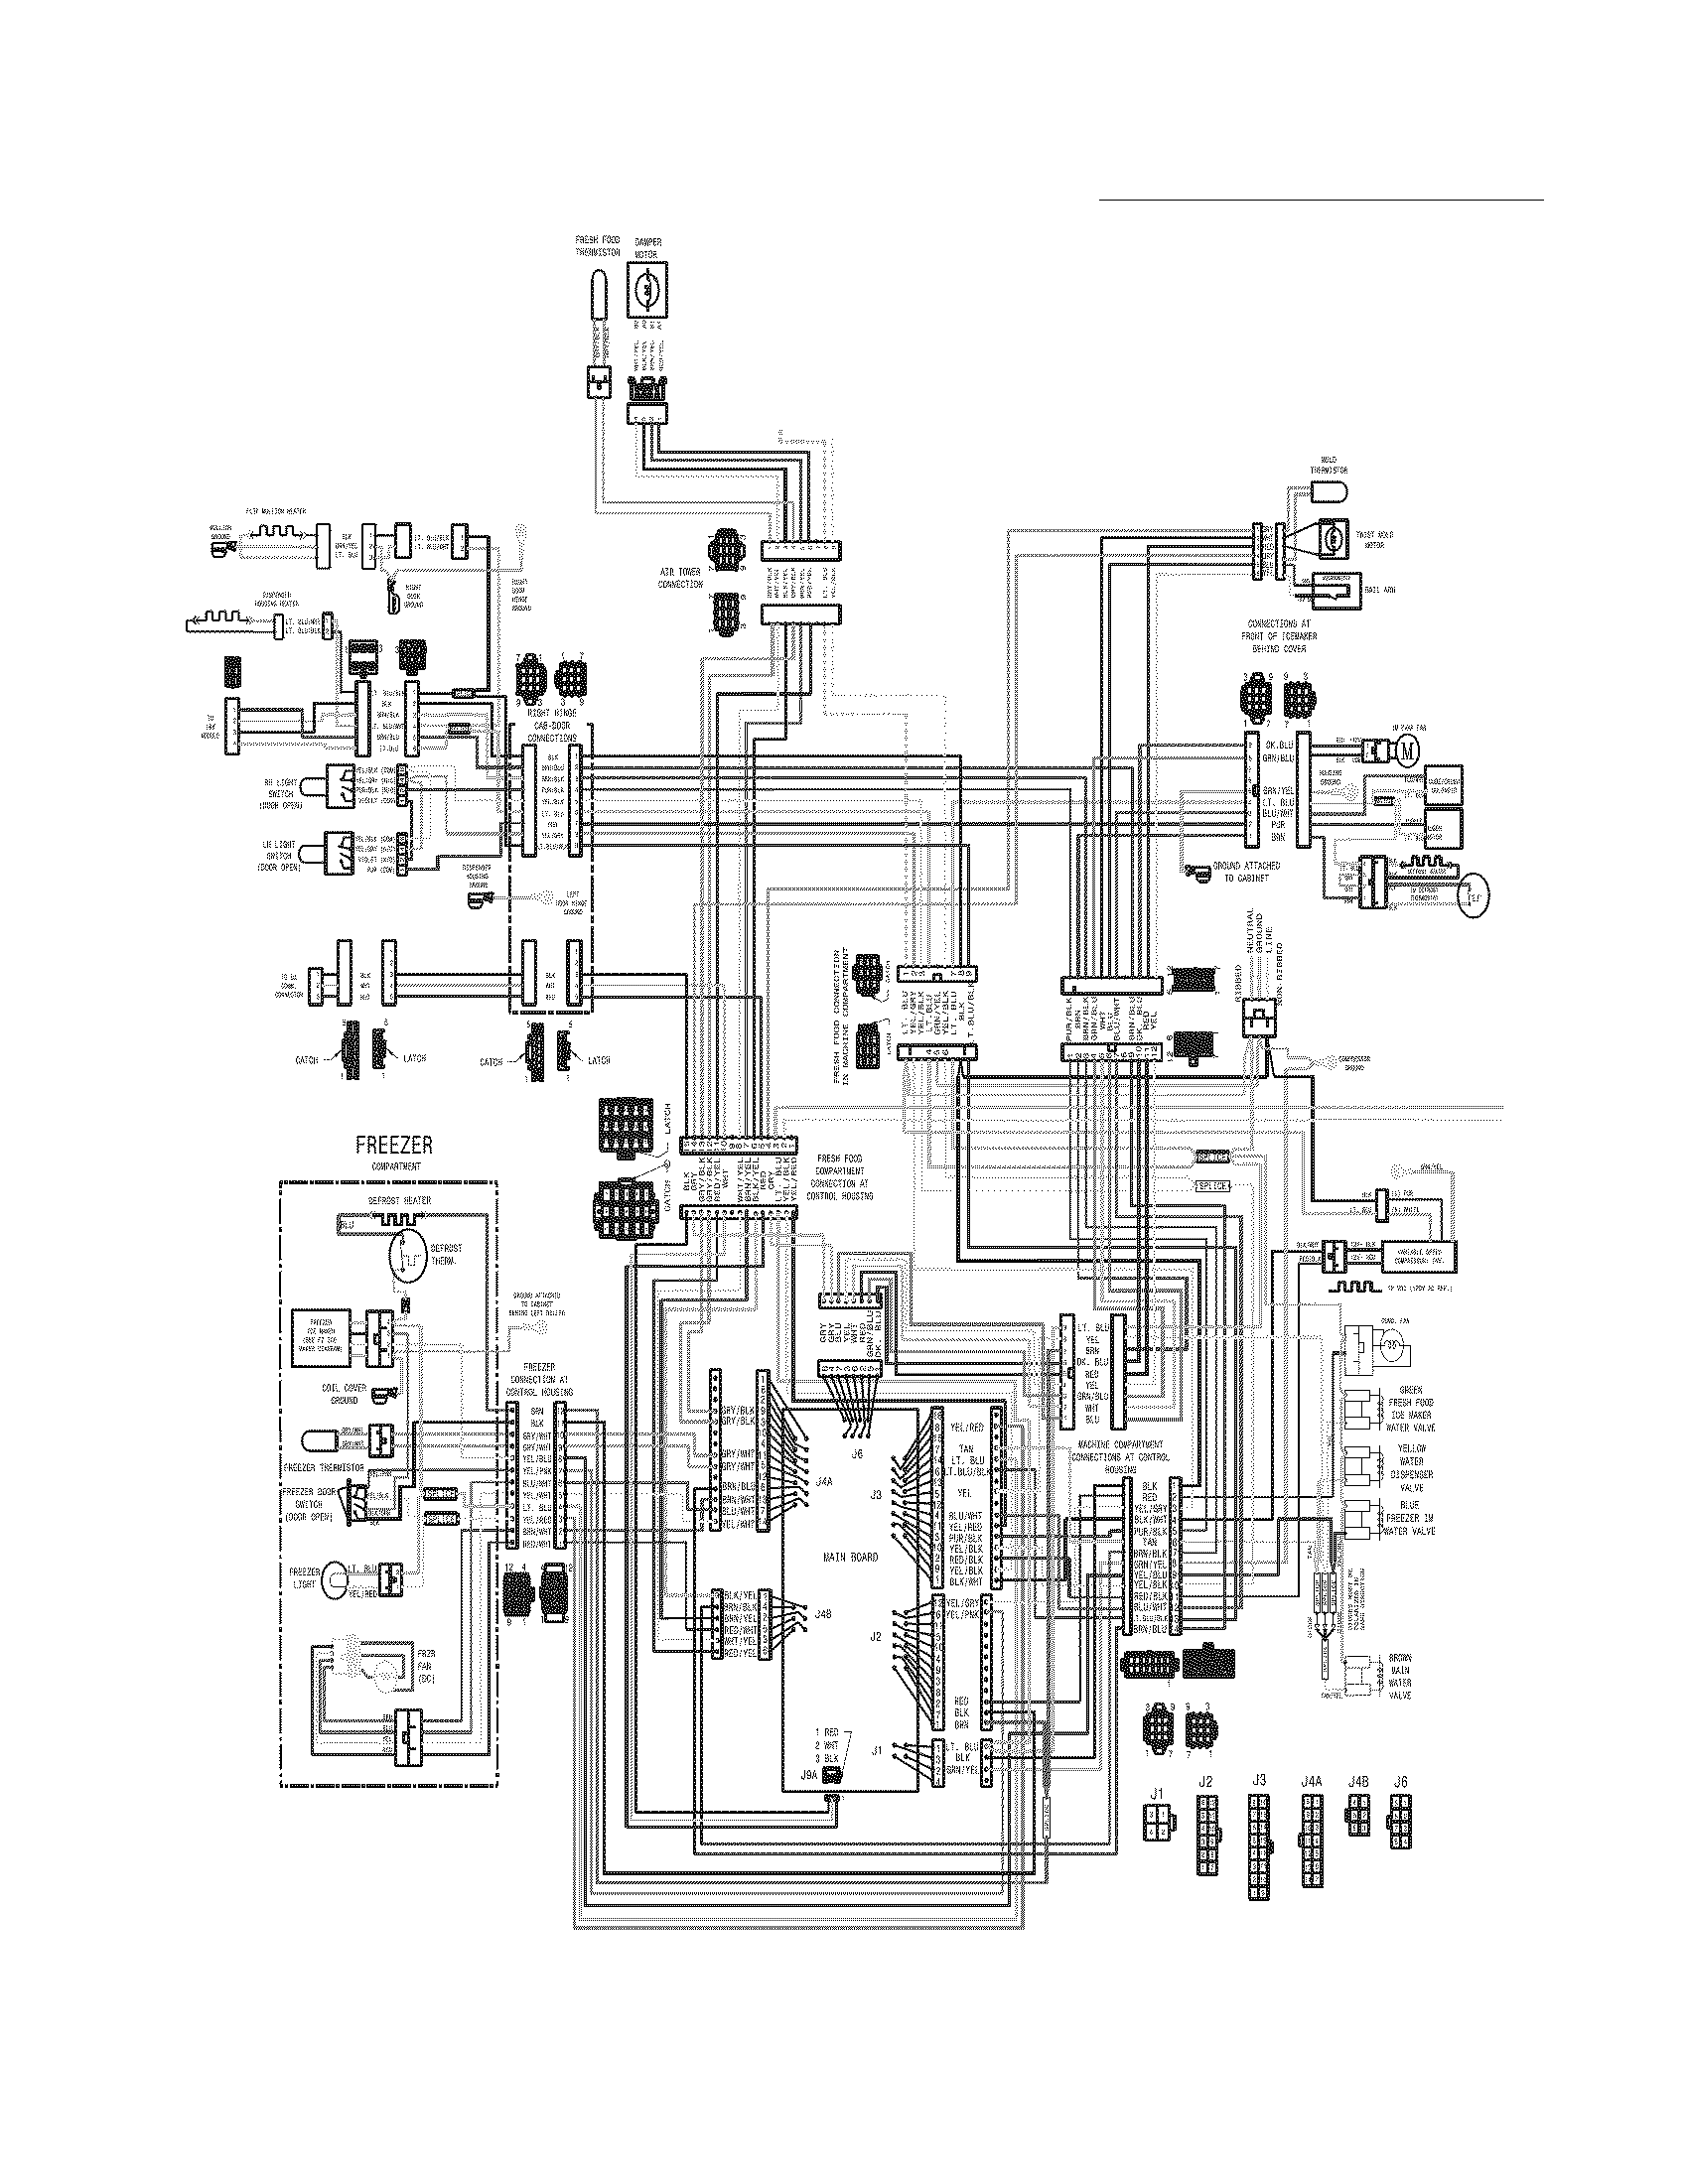 wiring diagram for a electrolux 3 way fridge network forward and backward pass frigidaire refrigerator parts model fghf2344mf5 sears